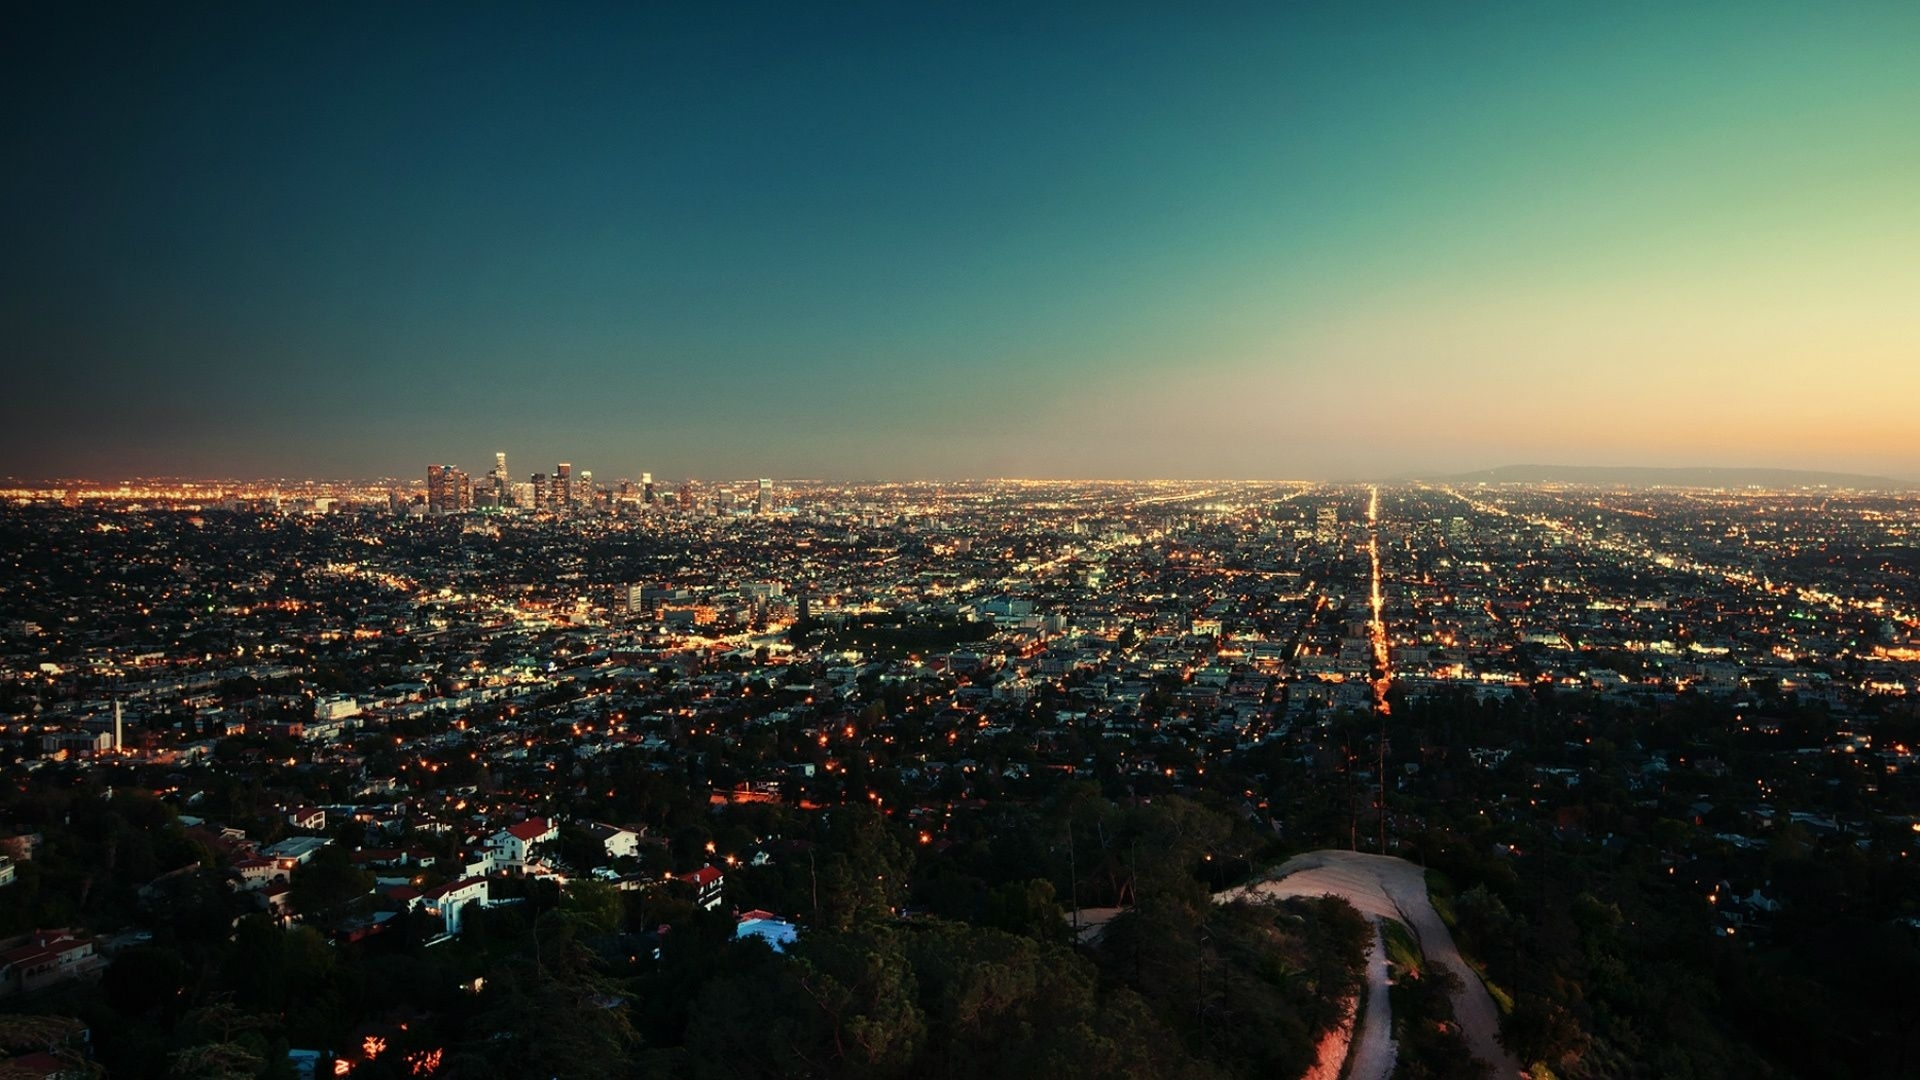 download wallpaper 1920x1080 sunset, usa, los angeles, building, top